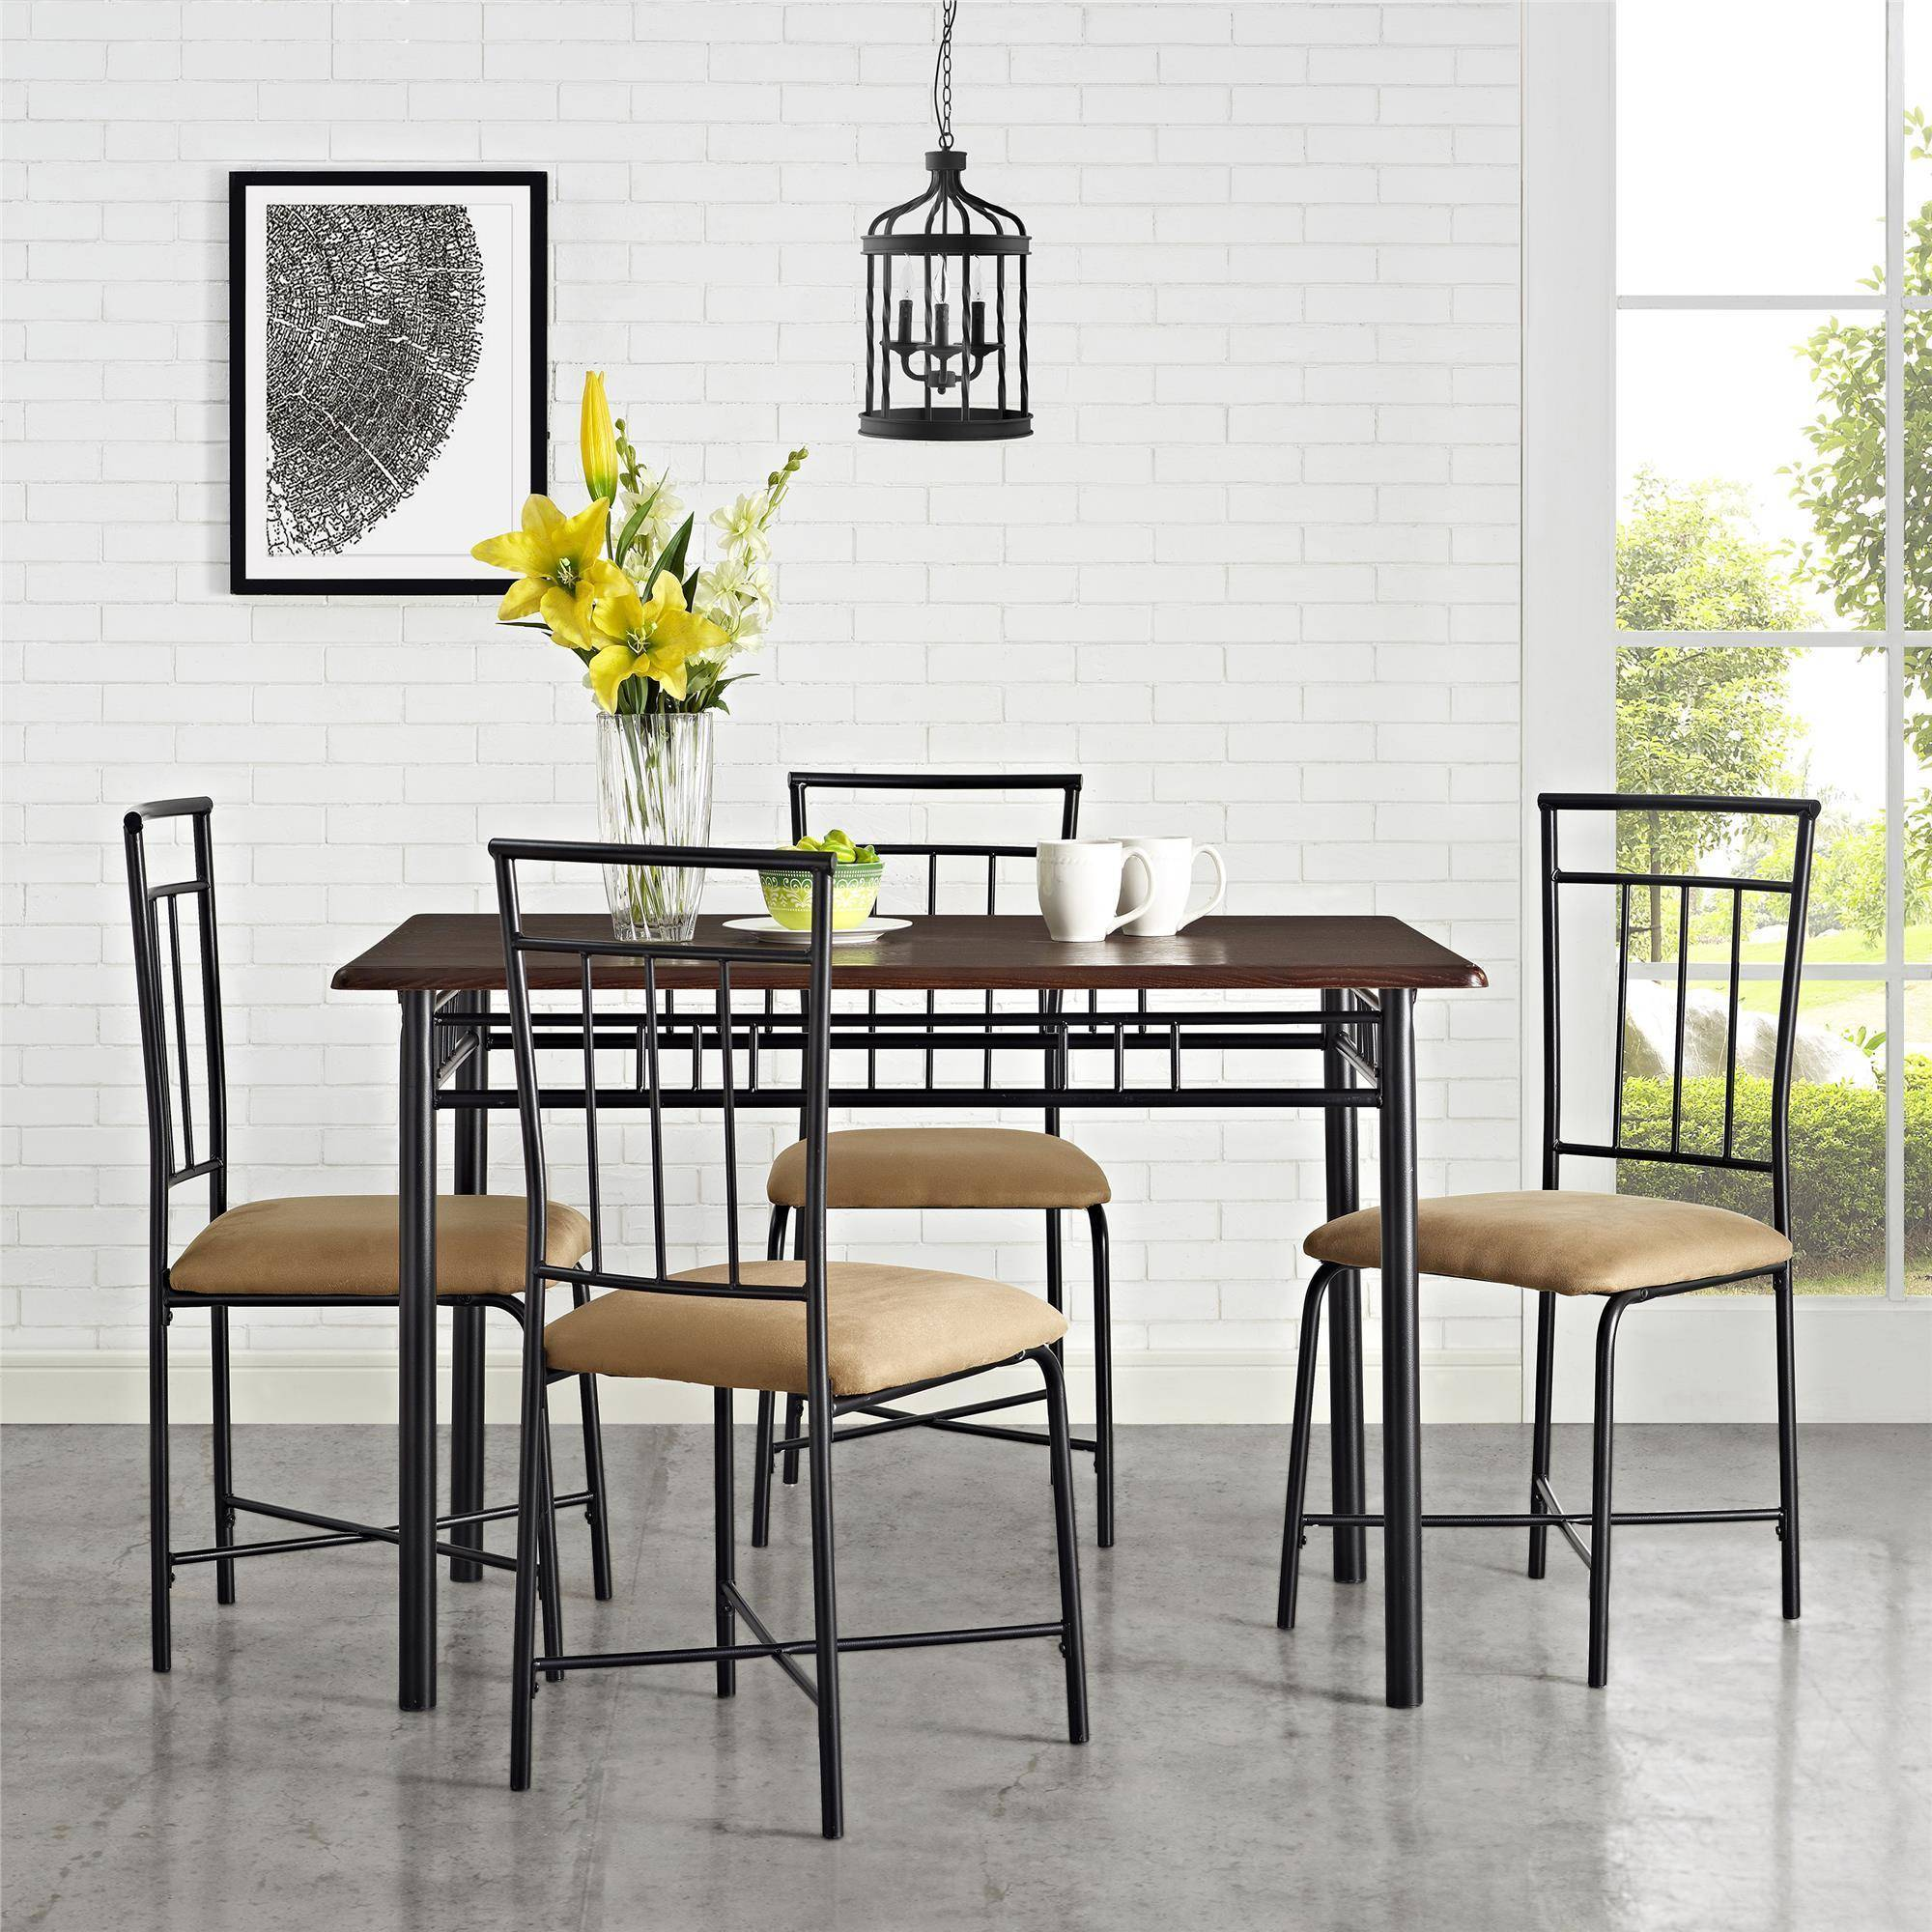 Mainstays 5-piece Dining Set Multiple Colors & Mainstays 5-piece Dining Set Multiple Colors - Walmart.com